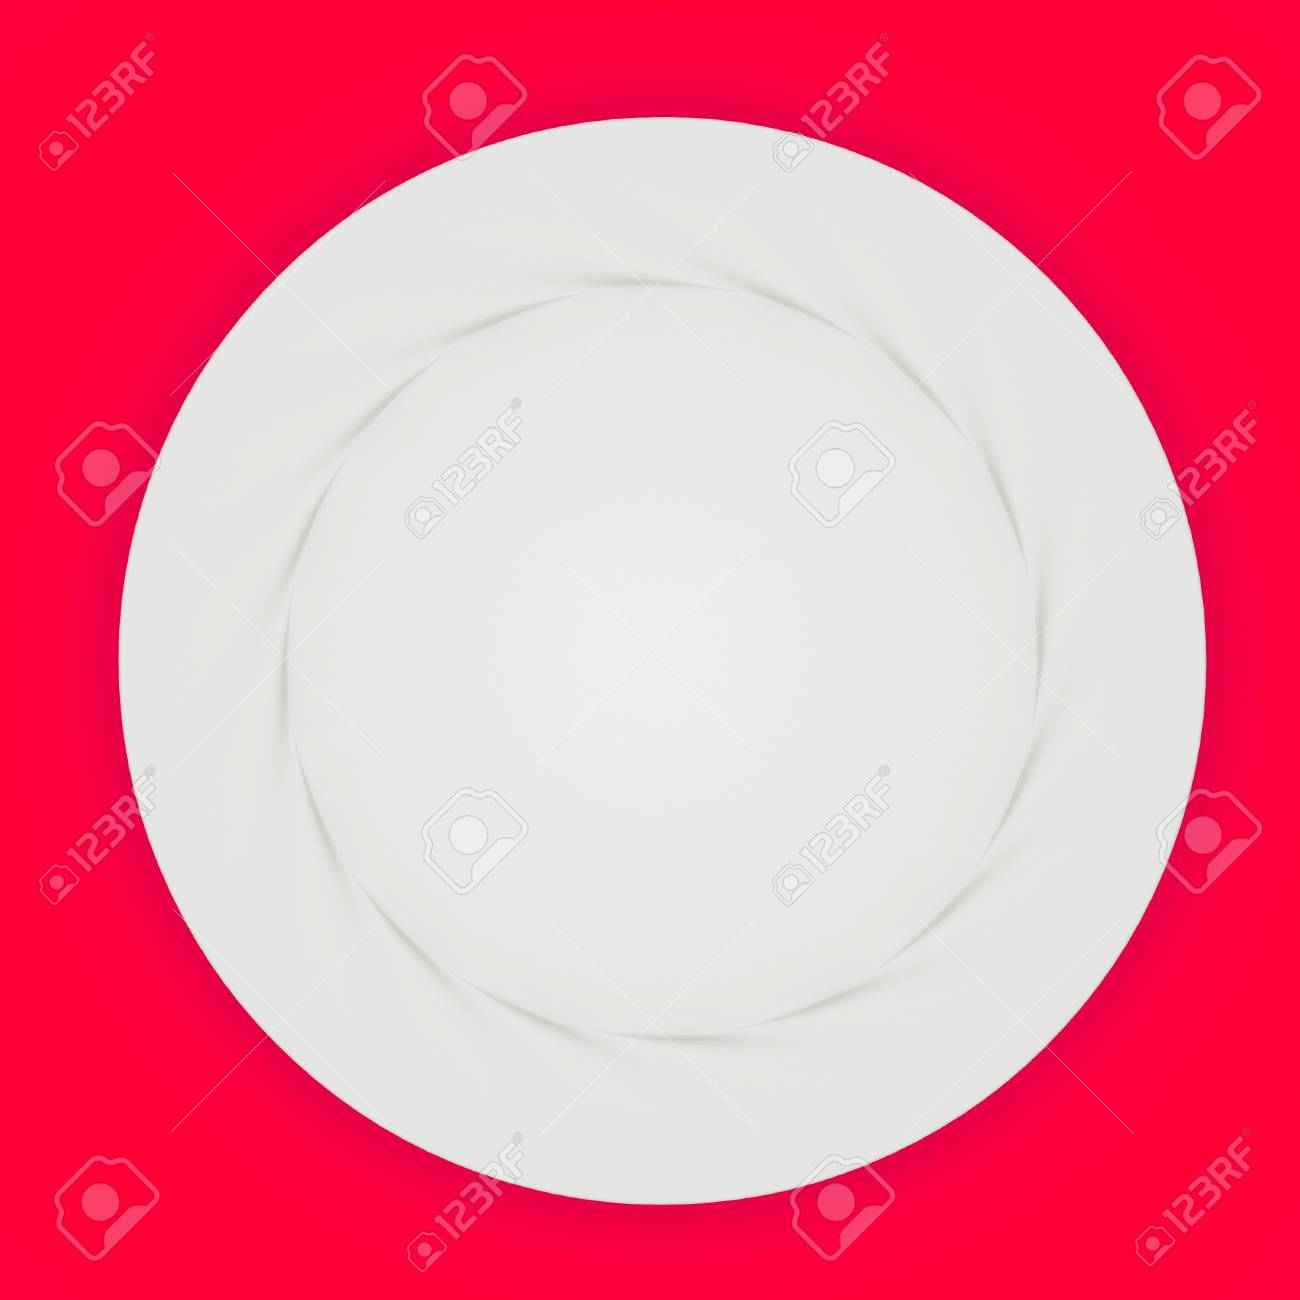 a single plate on red background Stock Photo - 10555714